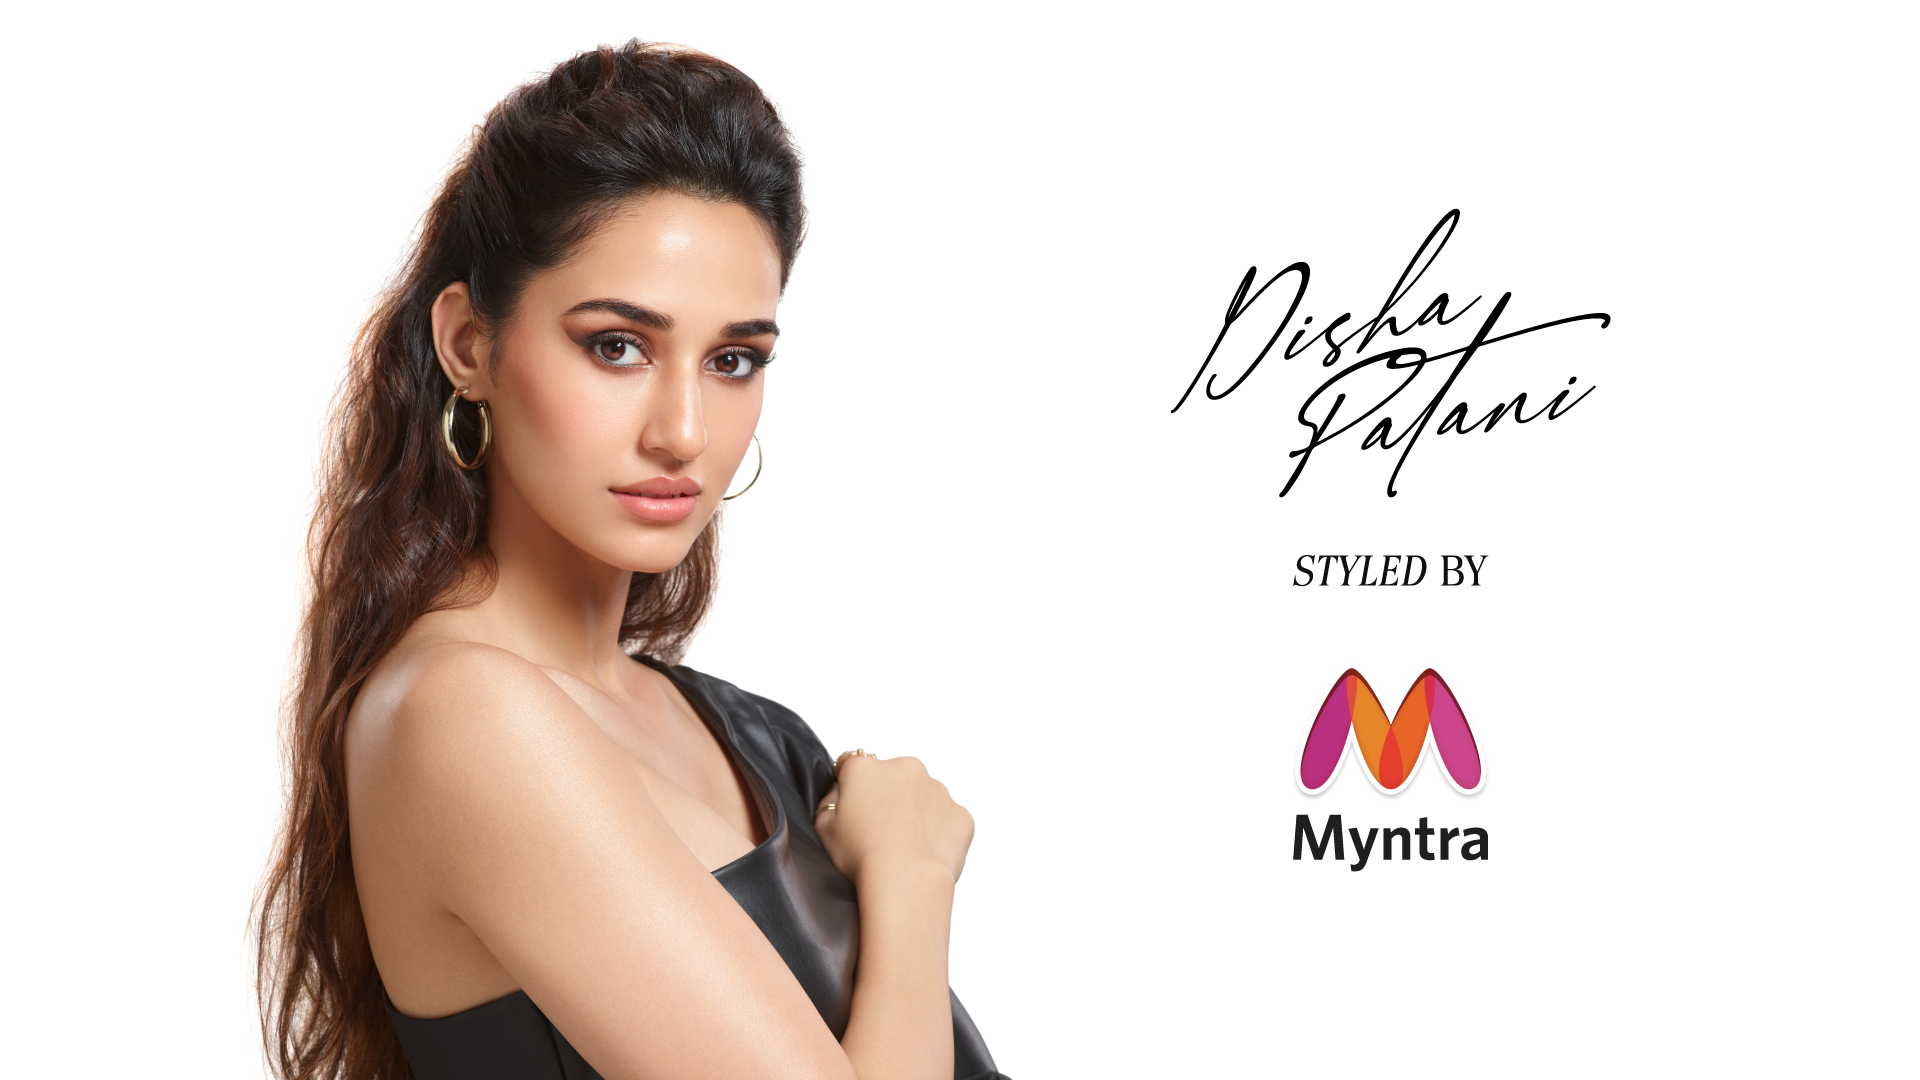 Disha Patani comes on board as Myntra's first 'beauty brand ambassador'